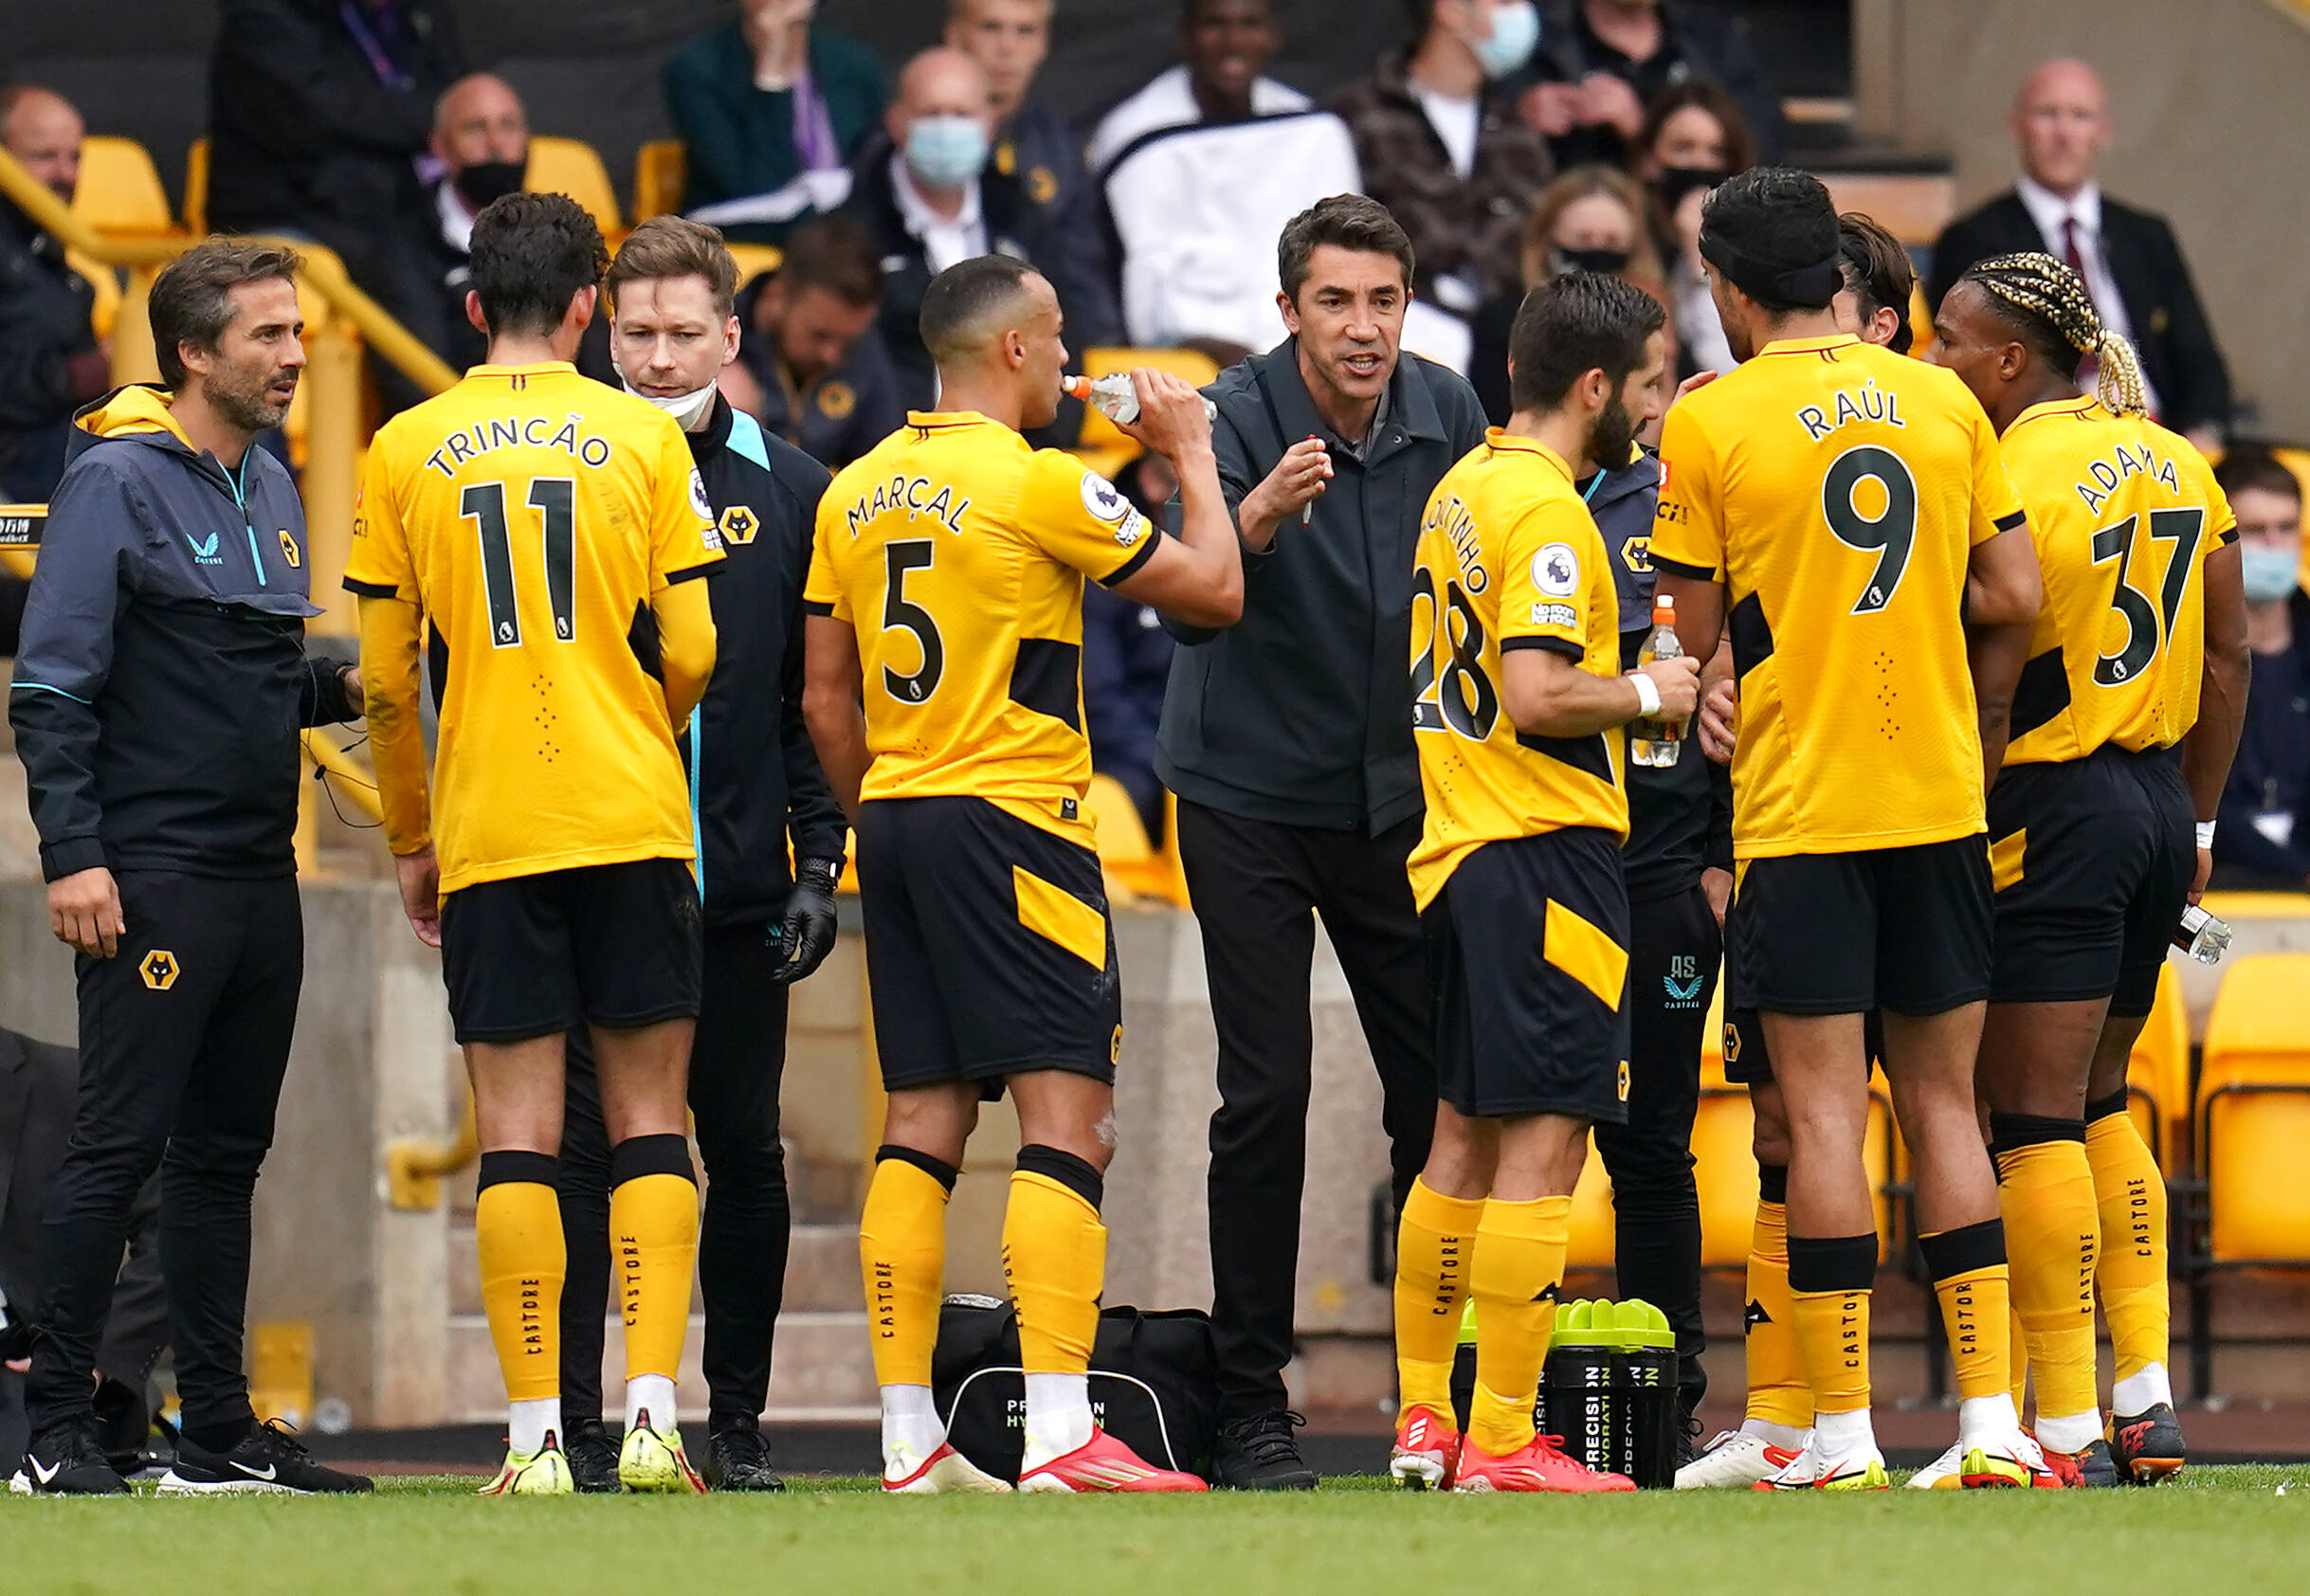 4-3-3 Wolves Predicted Lineup Vs Tottenham Hotspur (Wolves players are seen in the photo)